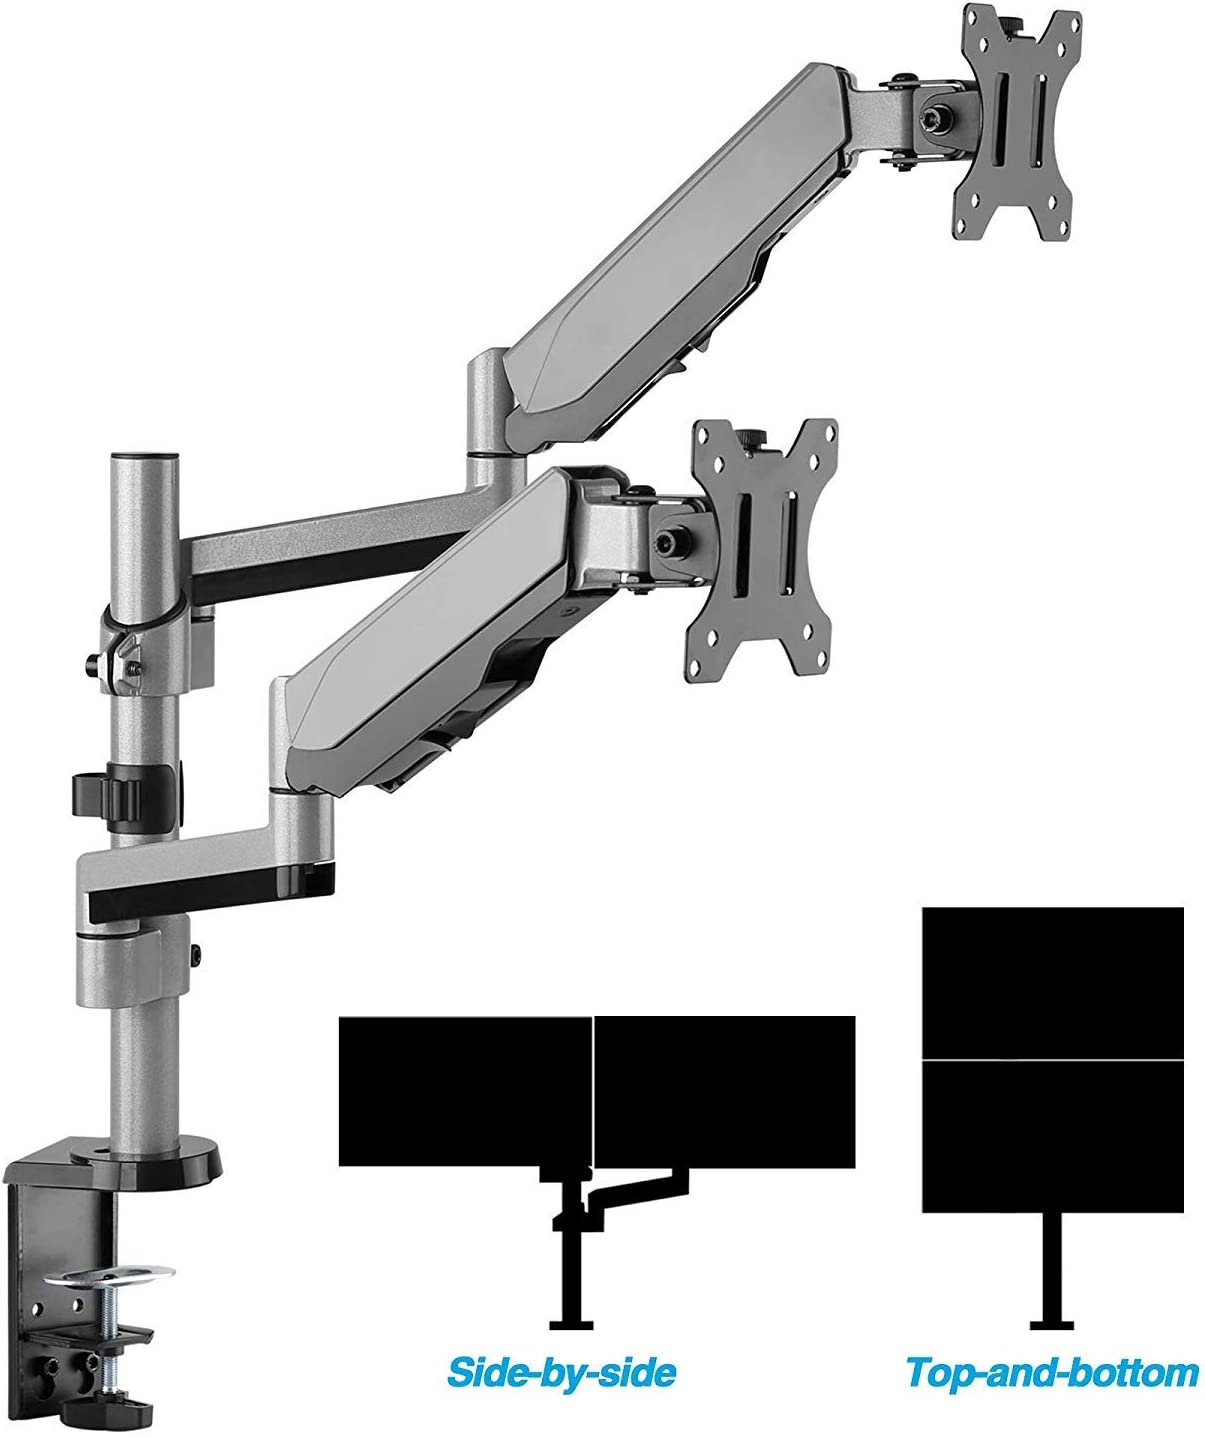 """AVLT-Power Dual 27"""" Monitor Stackable Desk Stand - Mount Two 17.6 lbs Computer Monitors on 2 Full Motion Adjustable Arms - Organize Your Work Surface with Ergonomic Viewing Angle VESA Monitor Riser"""